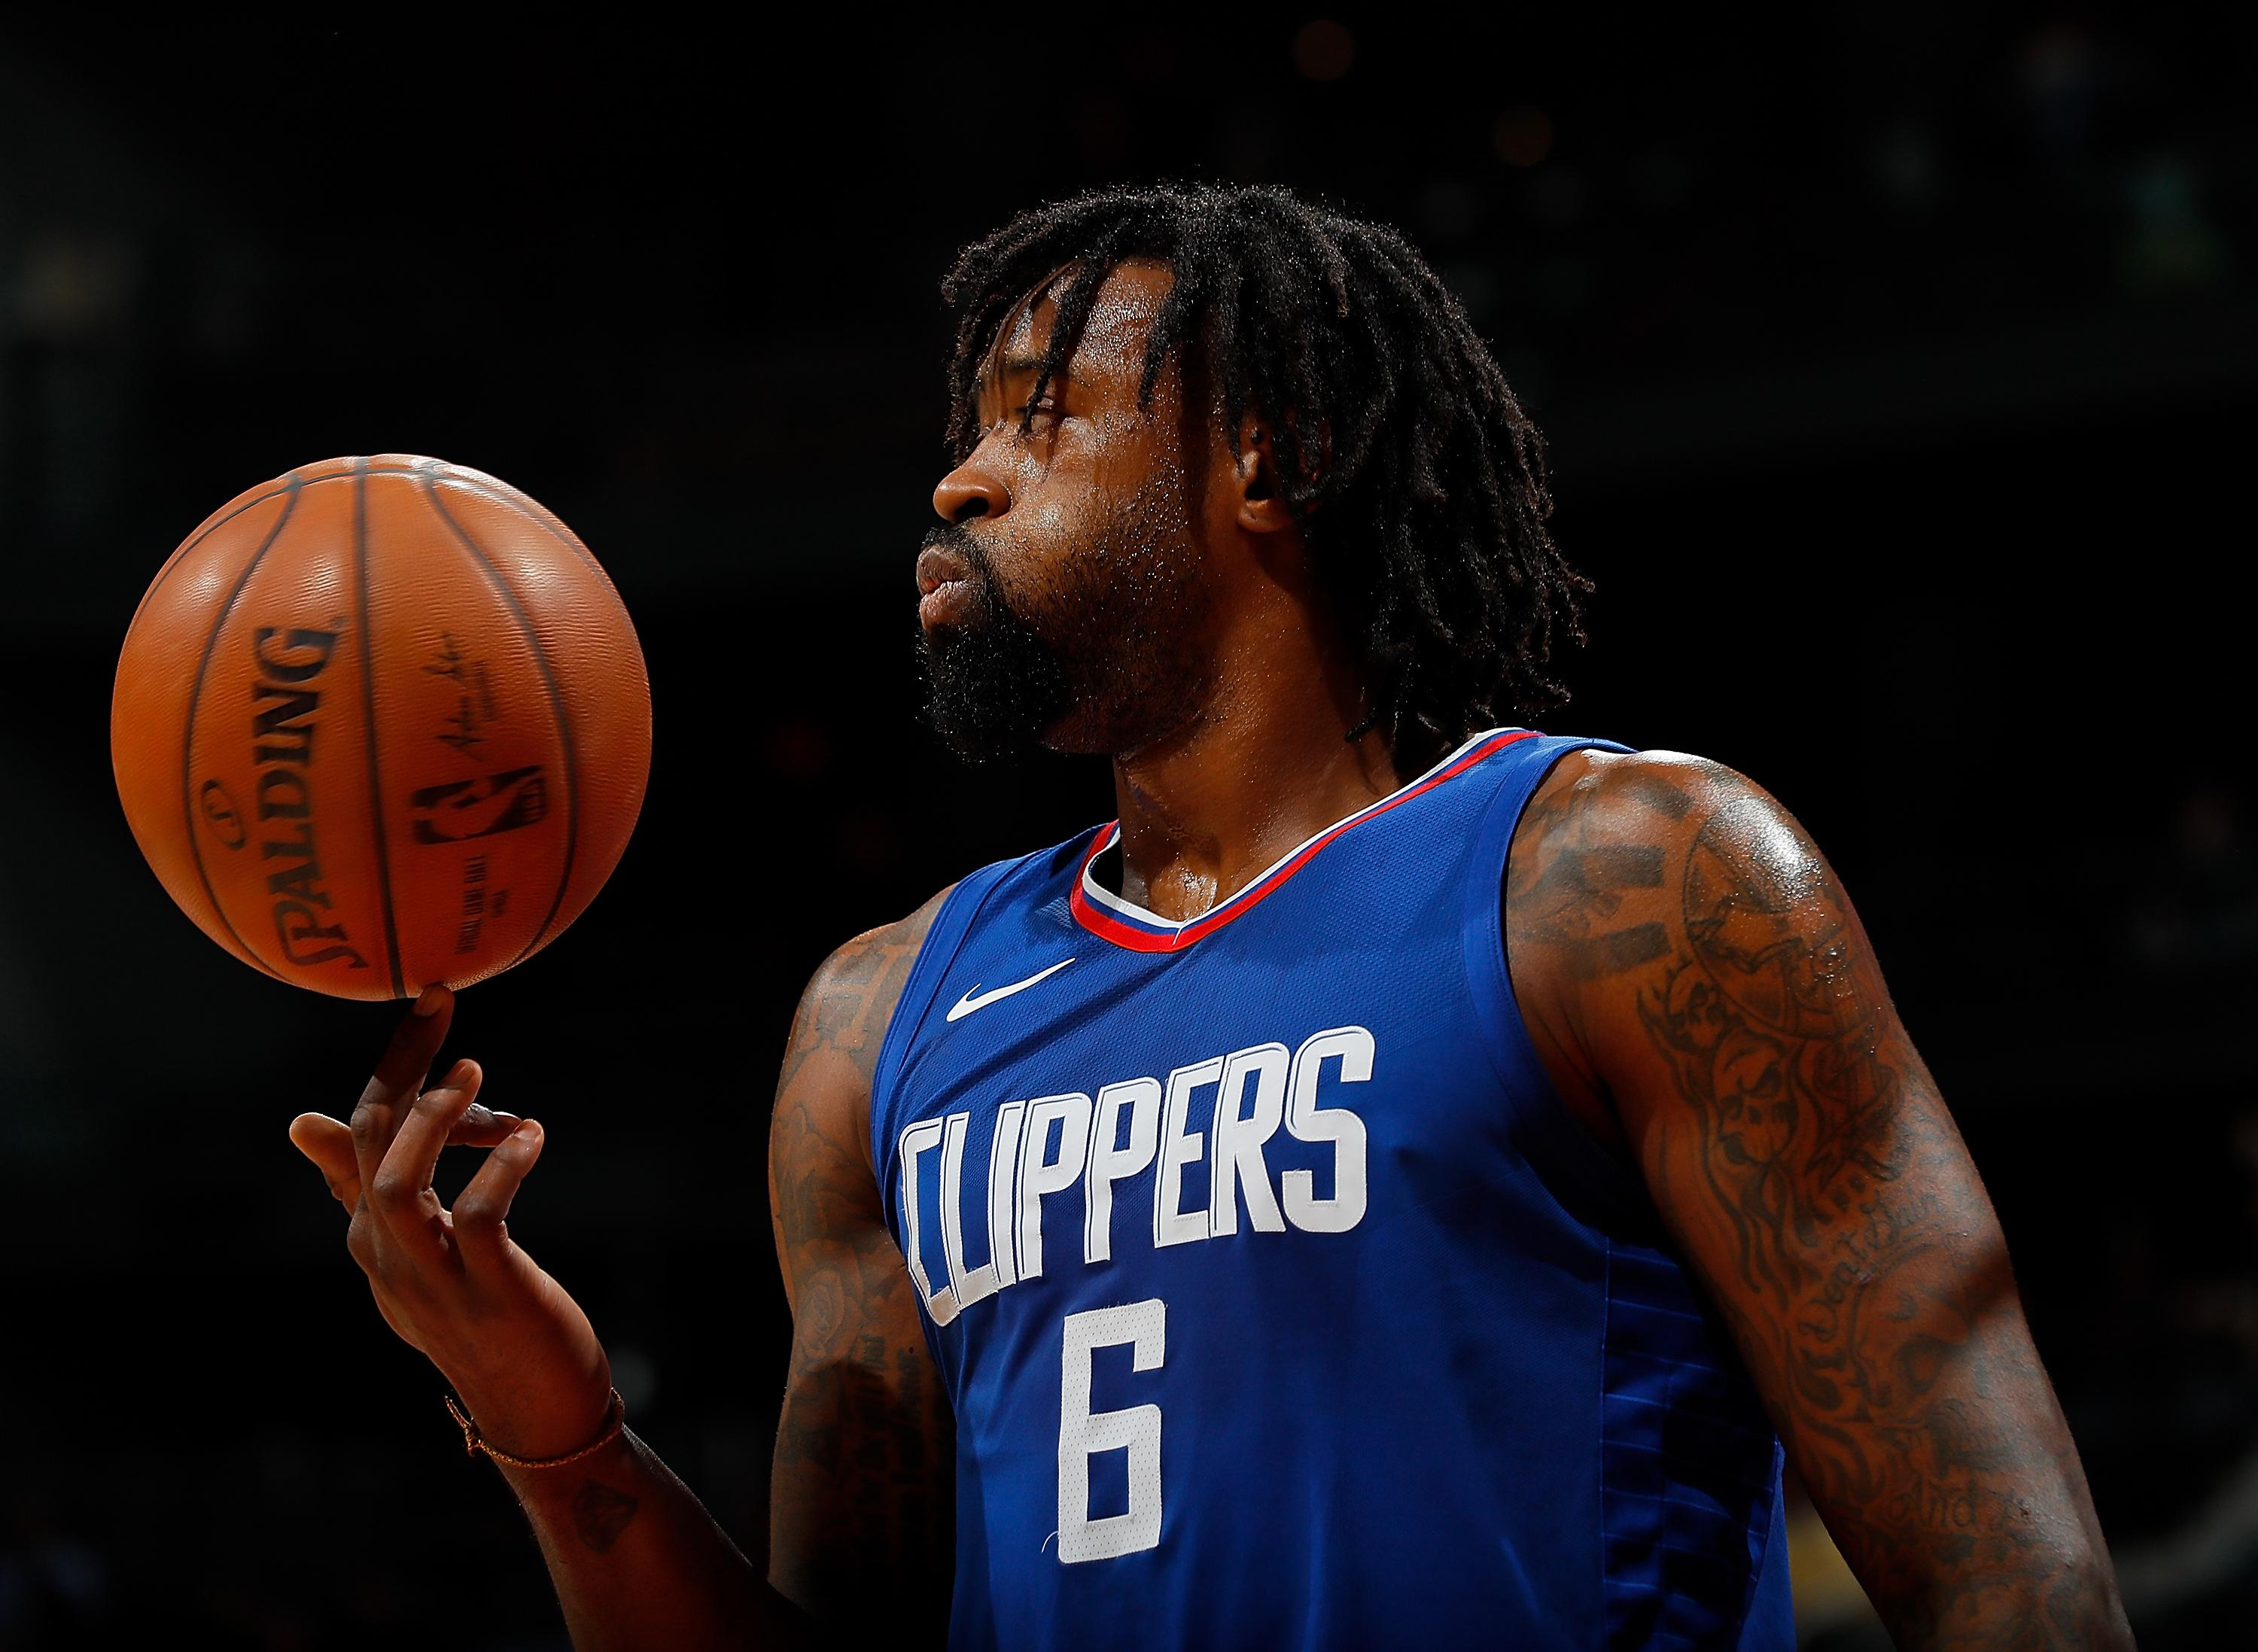 Iman Shumpert's contract stopped Cavs from landing DeAndre Jordan